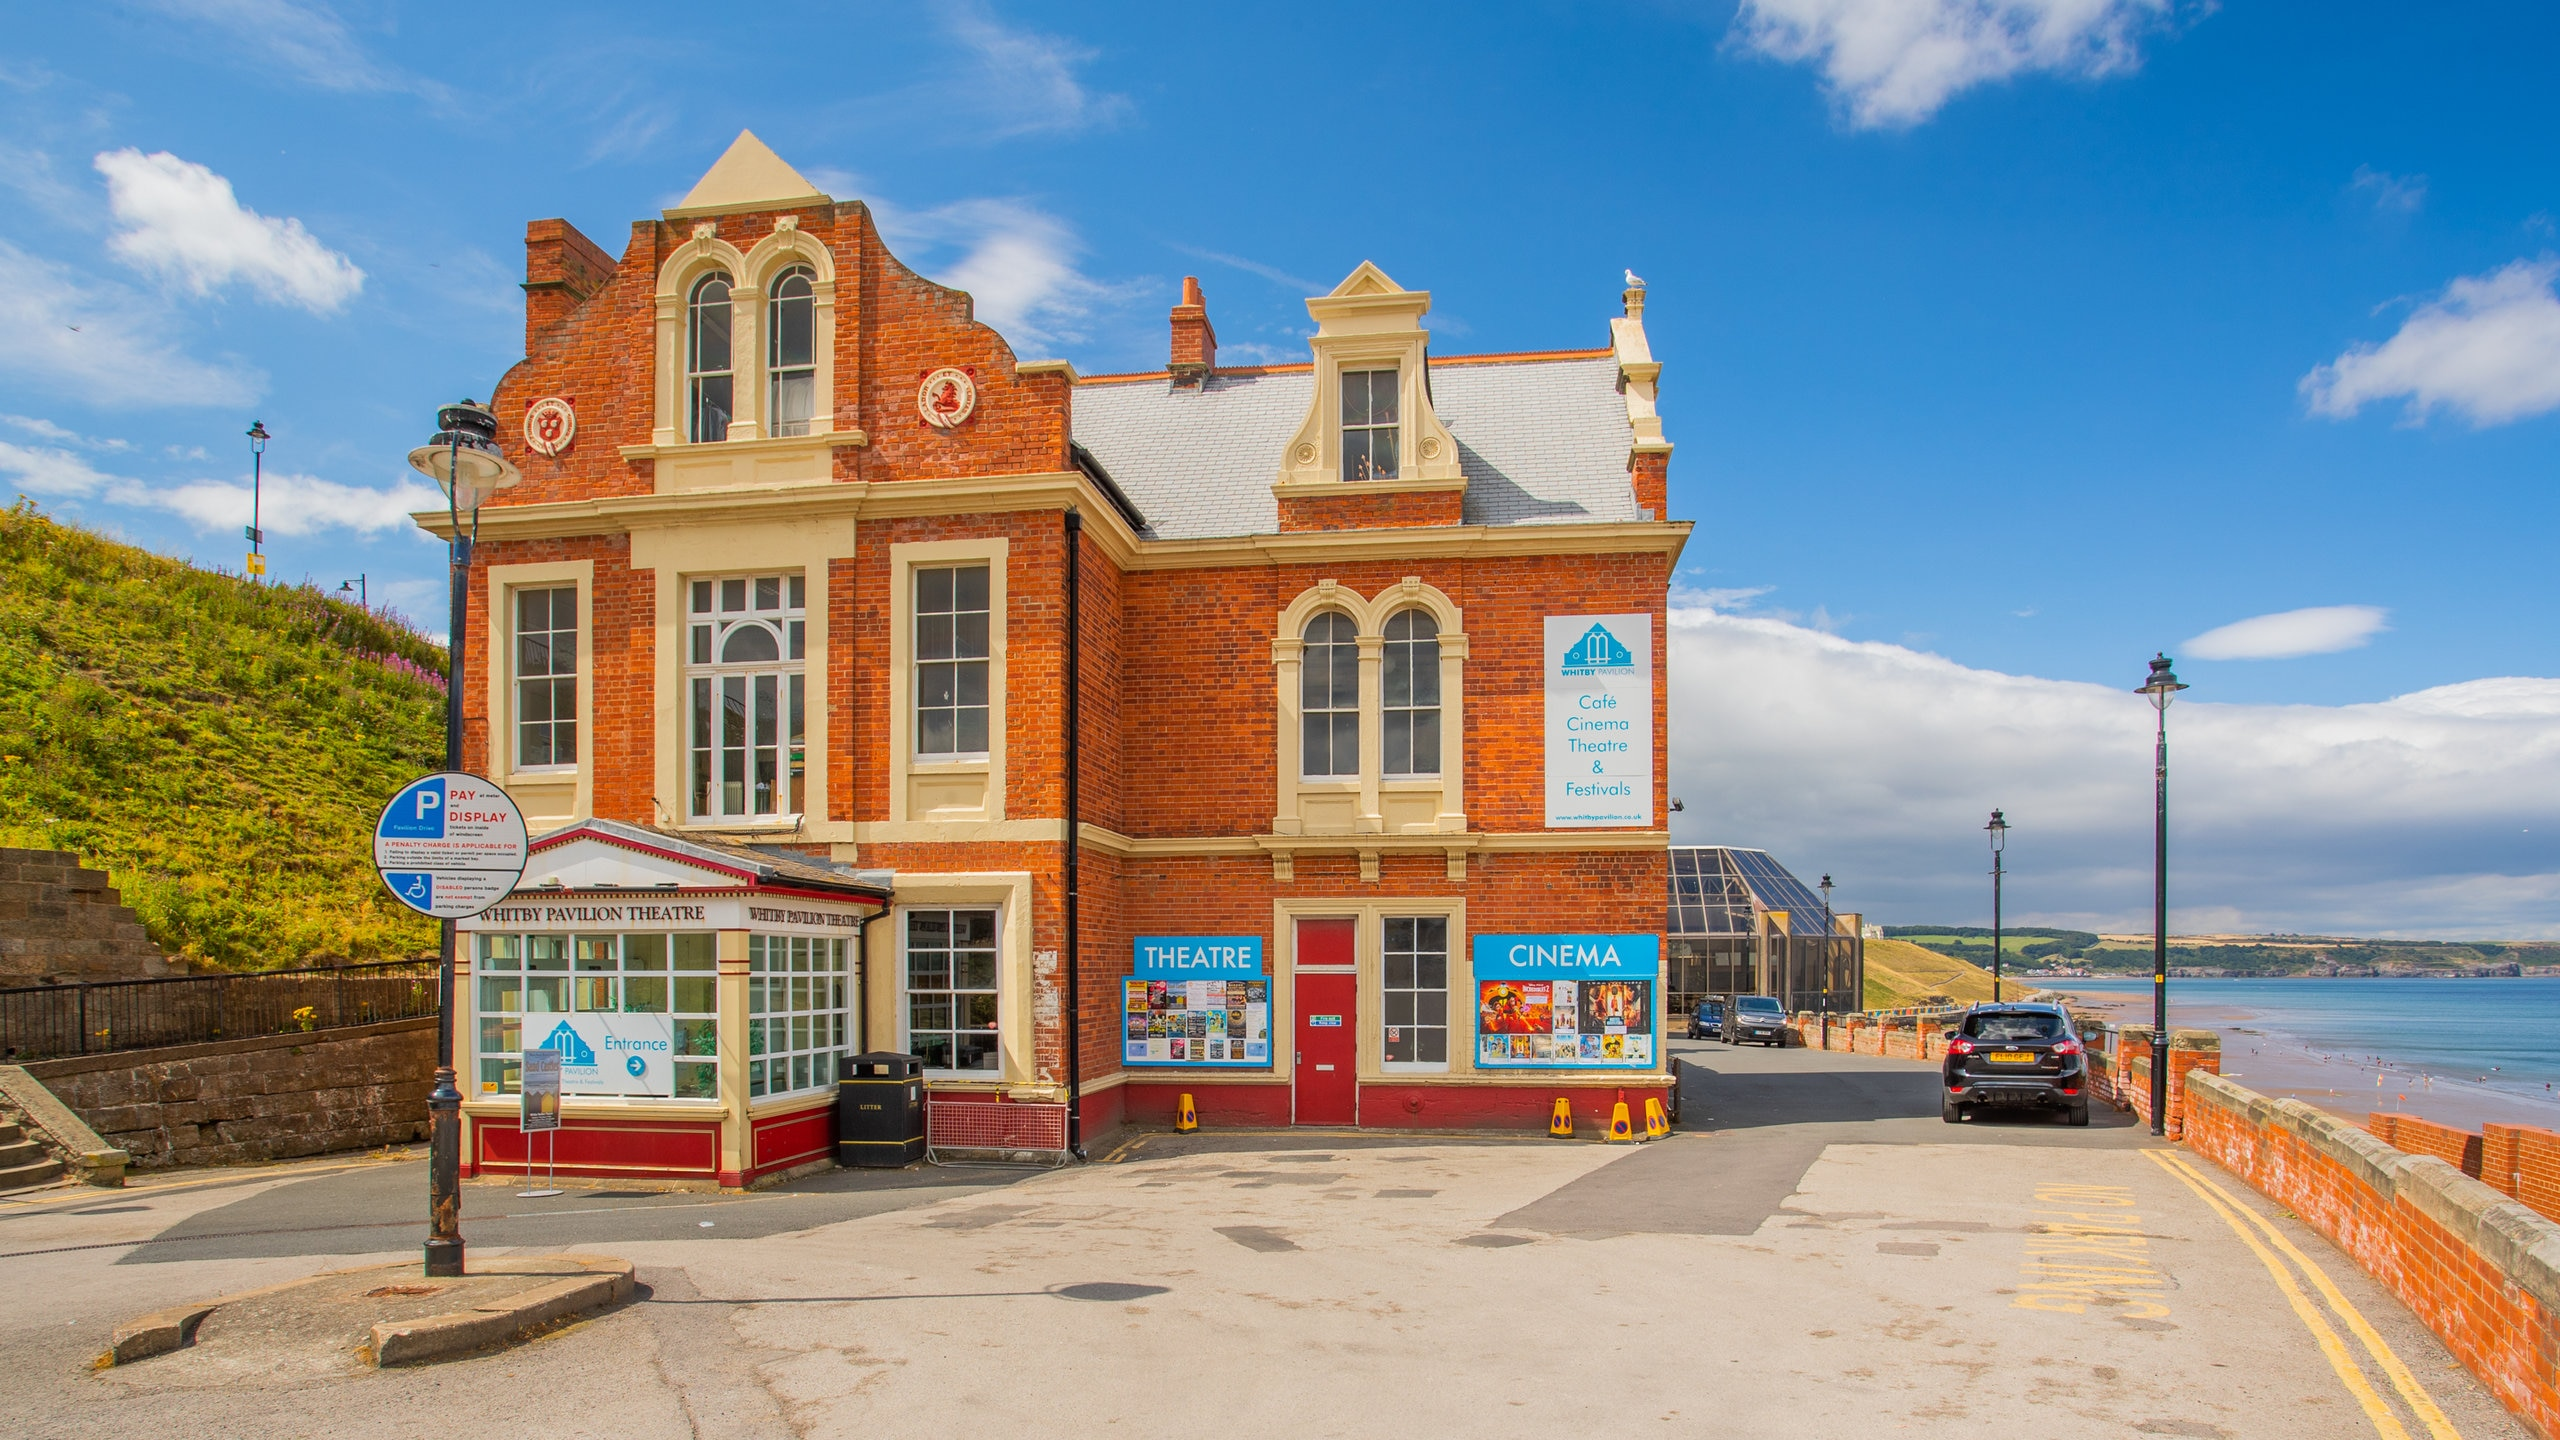 Overlooking Whitby Bay is a Victorian-era theater that hosts a range of concerts, movie screenings, plays and festivals.